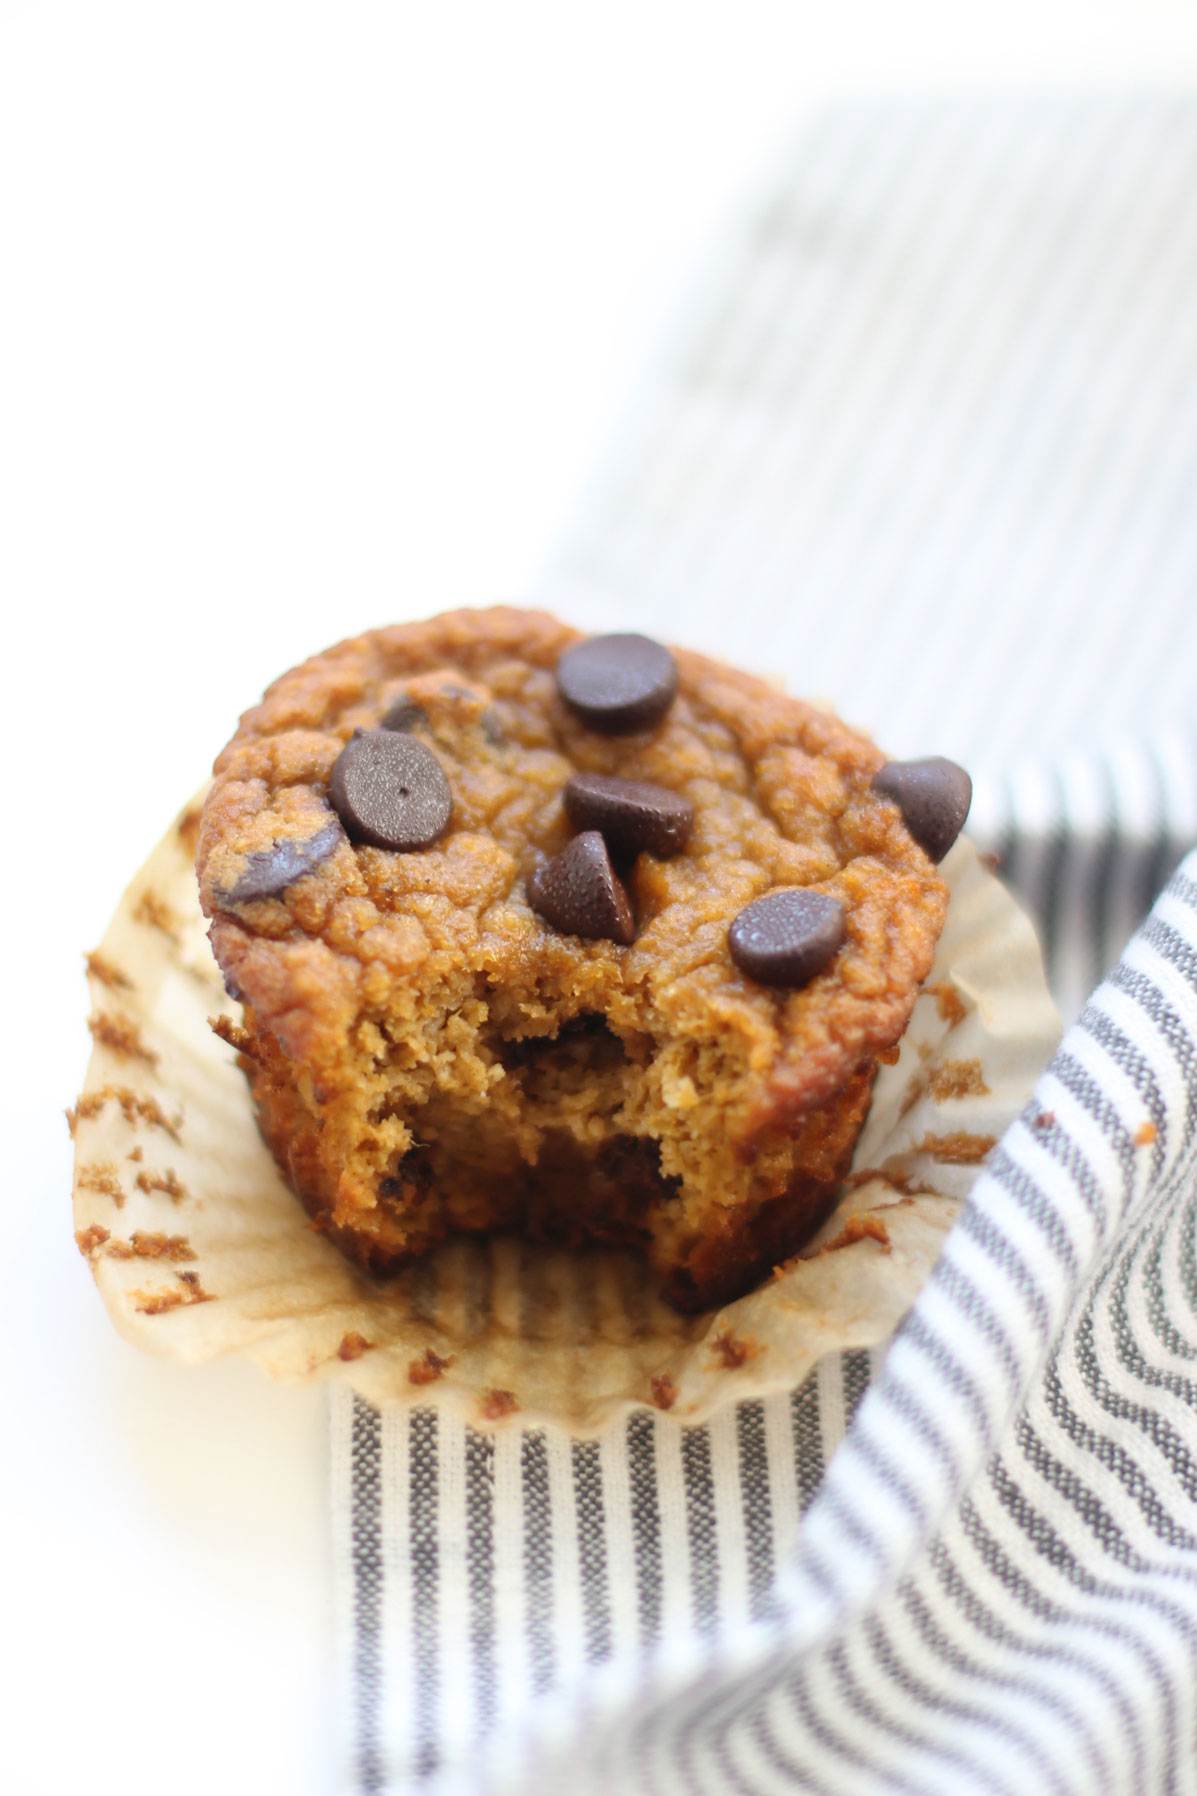 We've created the perfect healthy muffin! Fluffy roasted sweet potato muffins made with almond flour (i.e., gluten-free), greek yogurt (or coconut yogurt to keep it dairy-free!), plus a handful of chocolate chips; you'll be amazed at what a healthy vegan and paleo on-the-go breakfast or snack can taste like. Click through for the recipe. | glitterinc.com | @glitterinc #muffins #healthybreakfast #healthymuffins